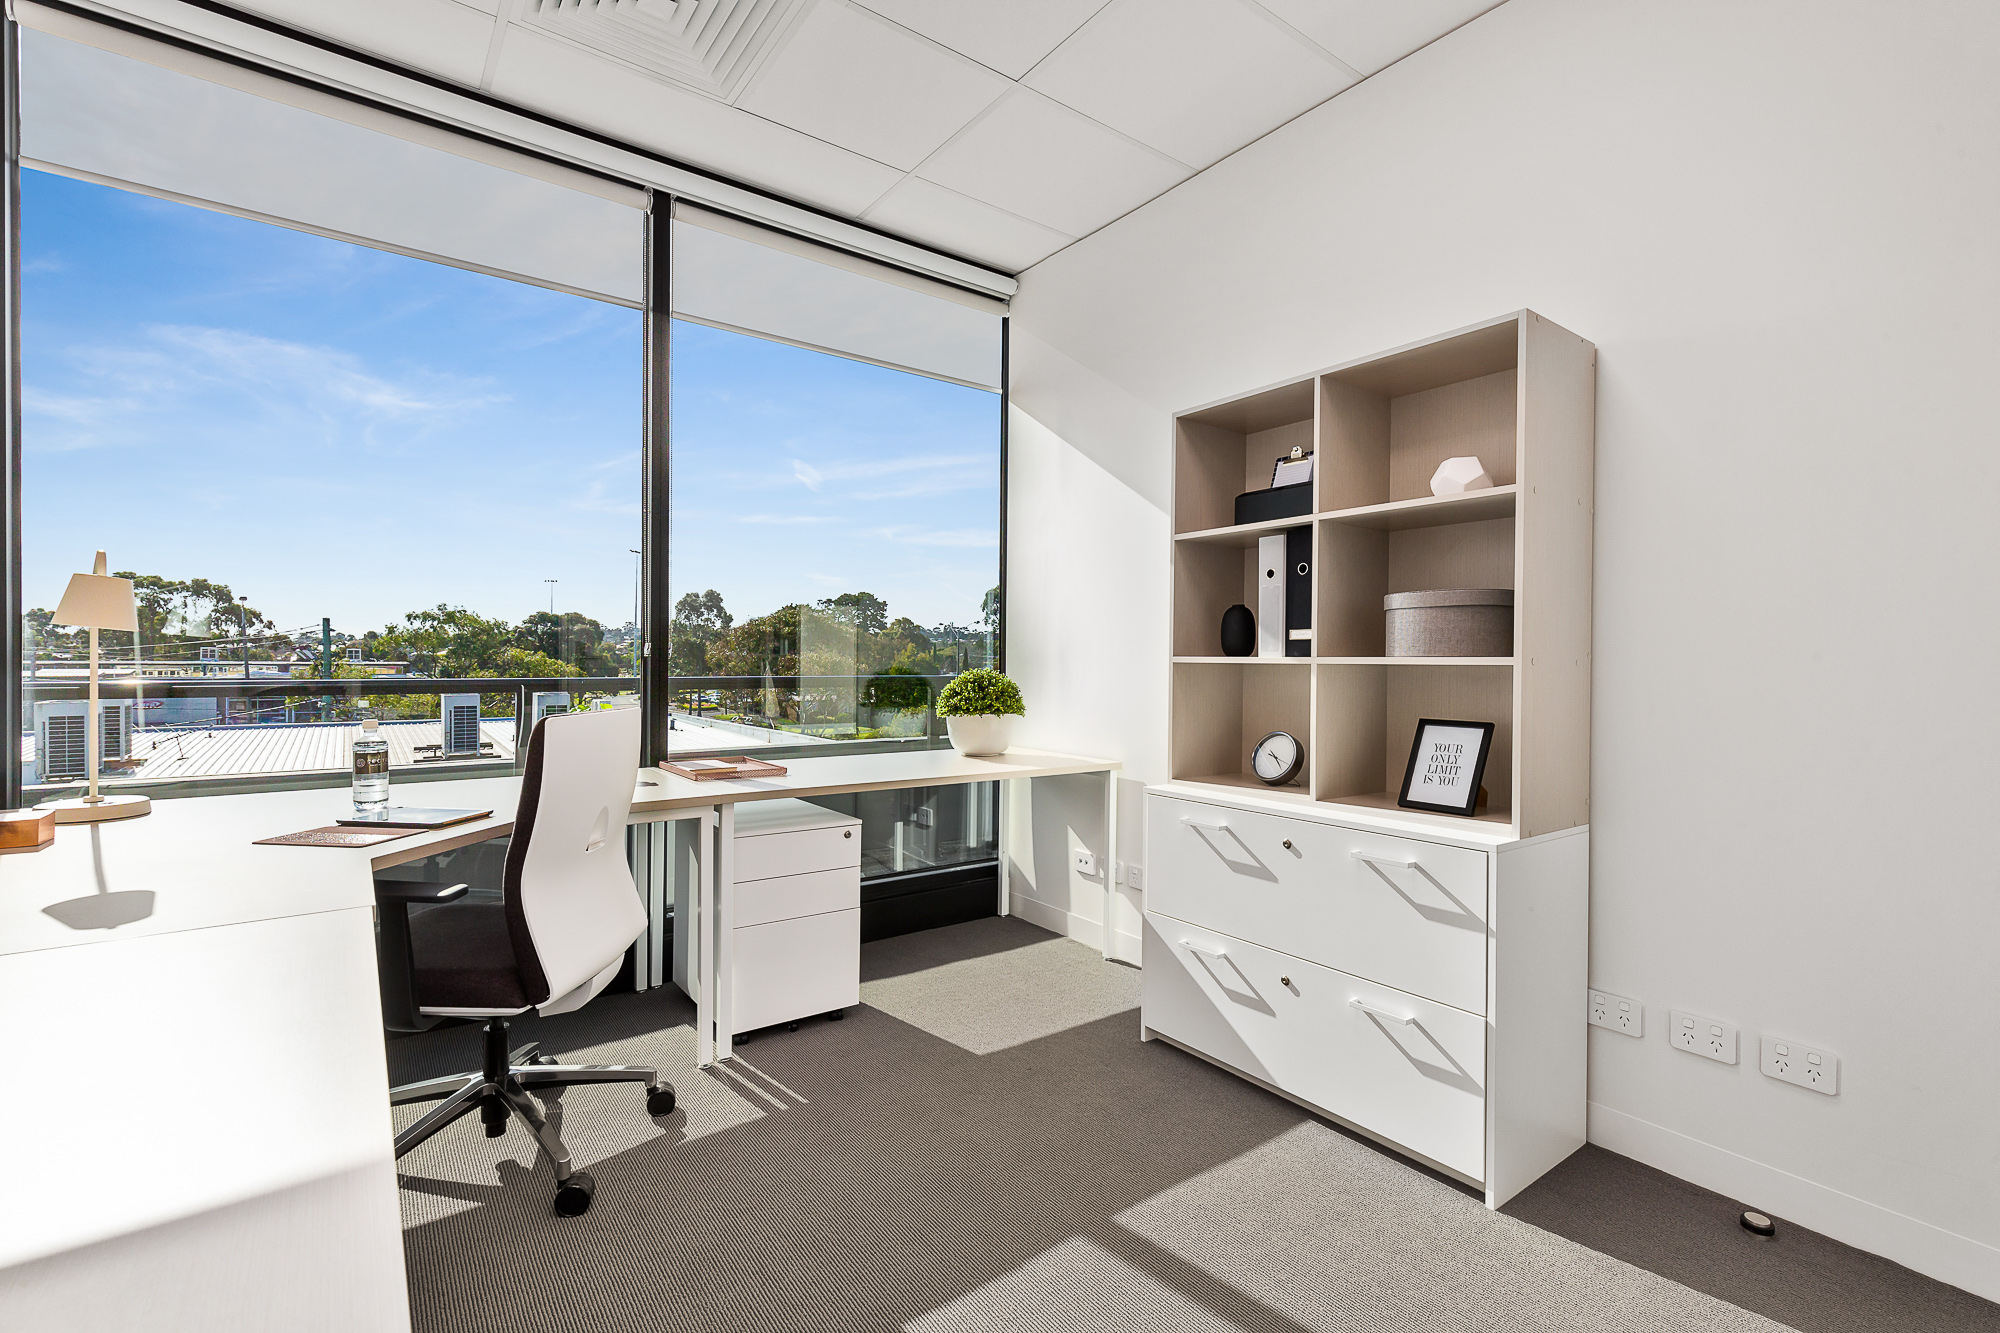 sector serviced offices wheelers.jpg